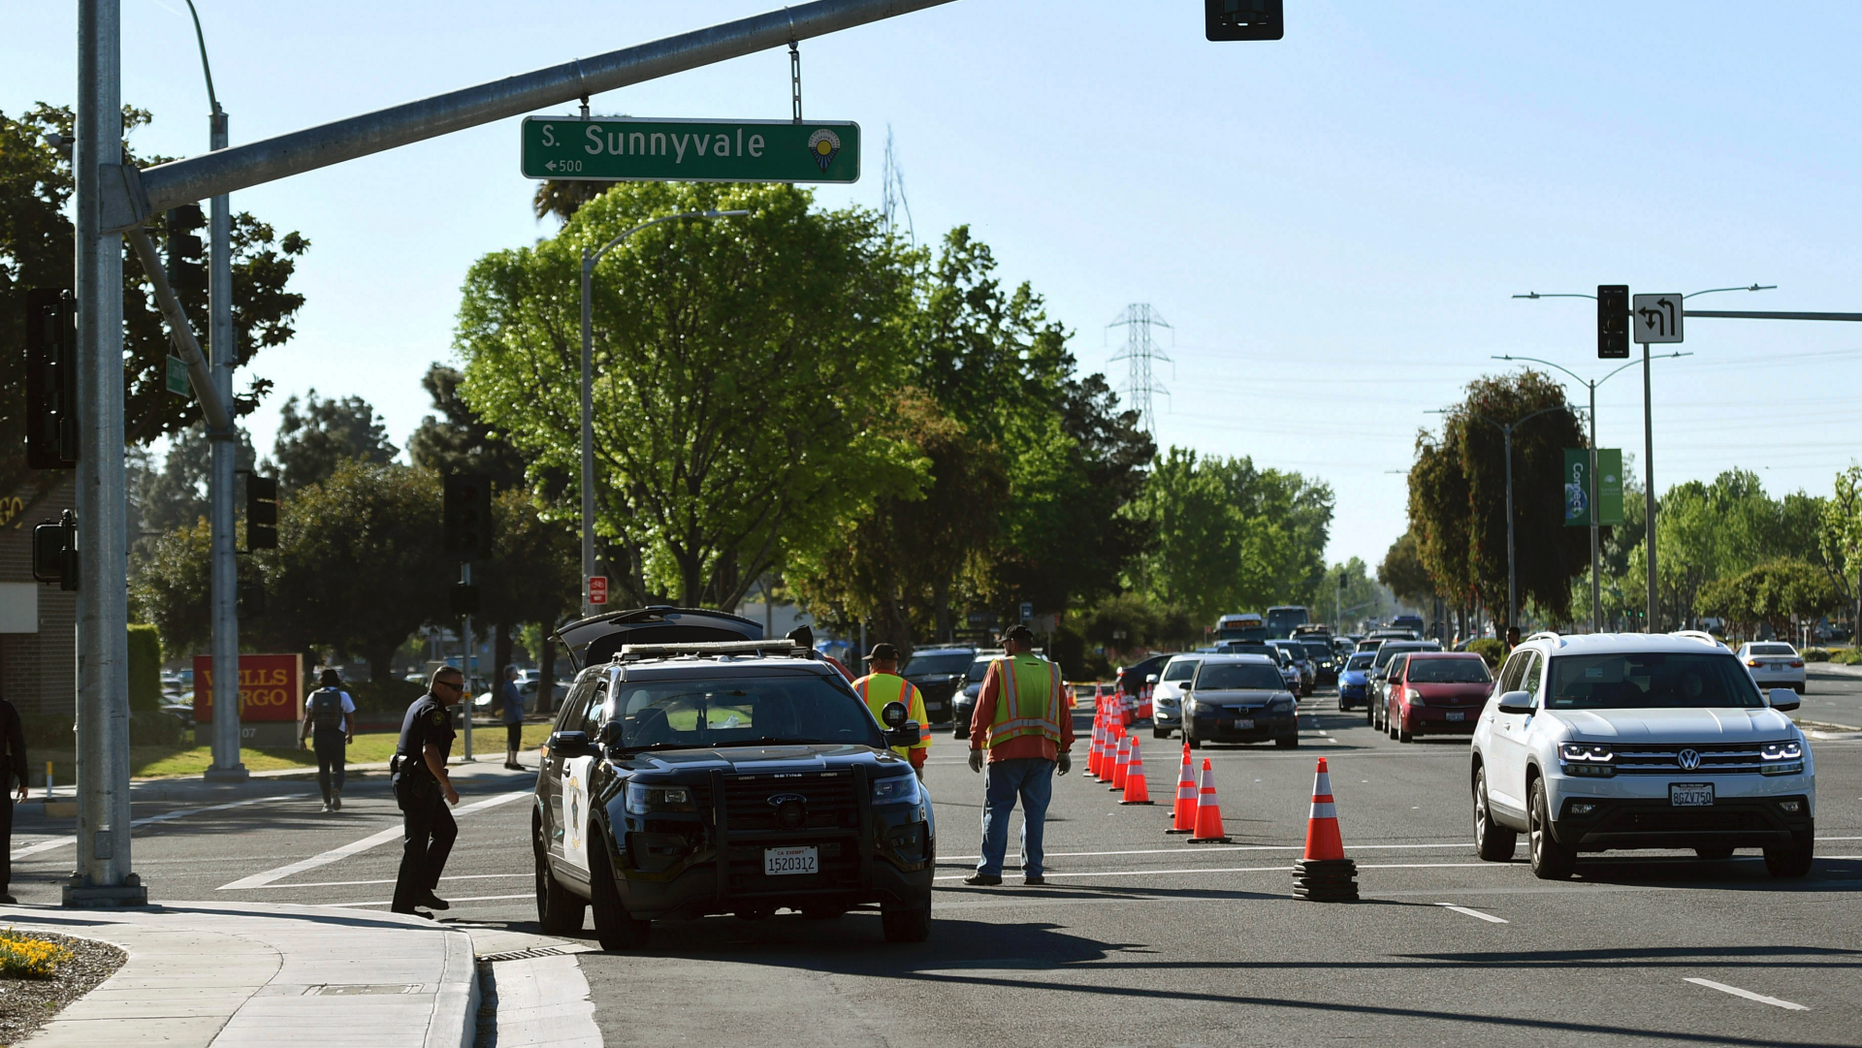 Police investigate the scene of car crash at the intersection of El Camino Real and Sunnyvale Road in Sunnyvale, Calif., on Wednesday, April 24, 2019. Investigators are working to determine the cause of the crash in Northern California that injured several pedestrians on Tuesday evening. Authorities say the driver of the car was taken into custody after he appeared to deliberately plow into the group. (AP Photo/Cody Glenn)